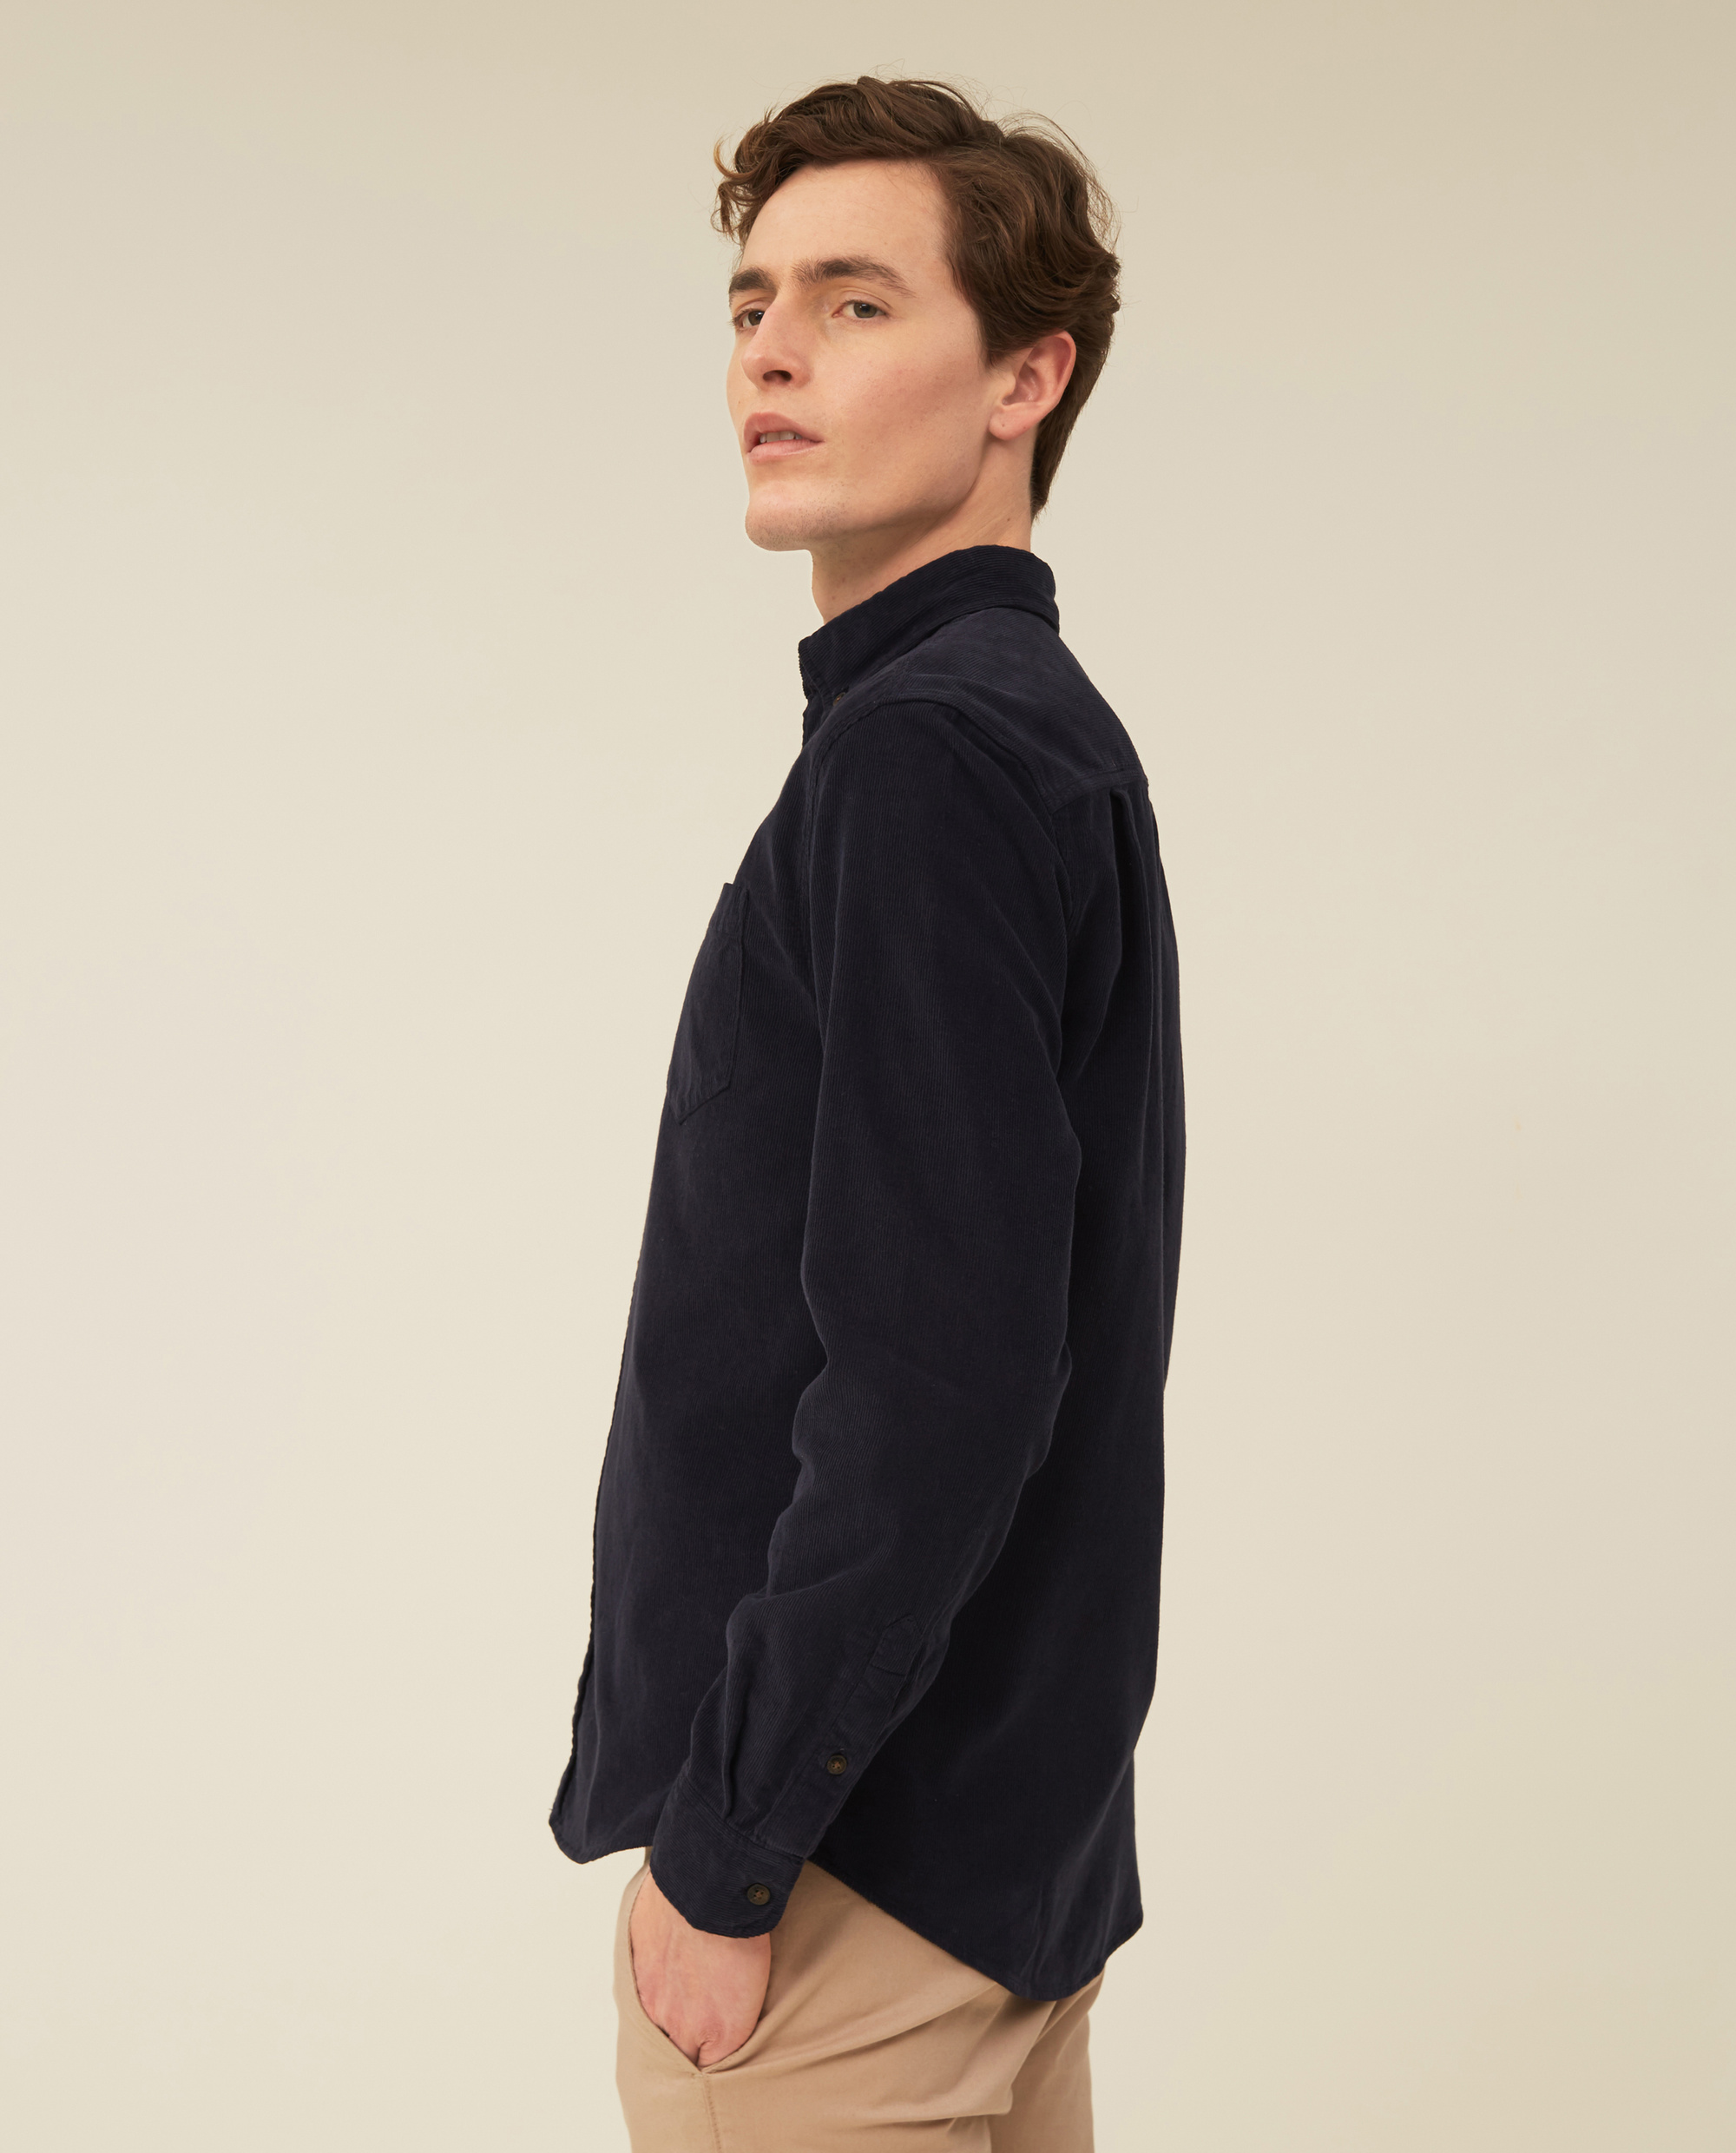 August Cord Shirt, Dark Blue